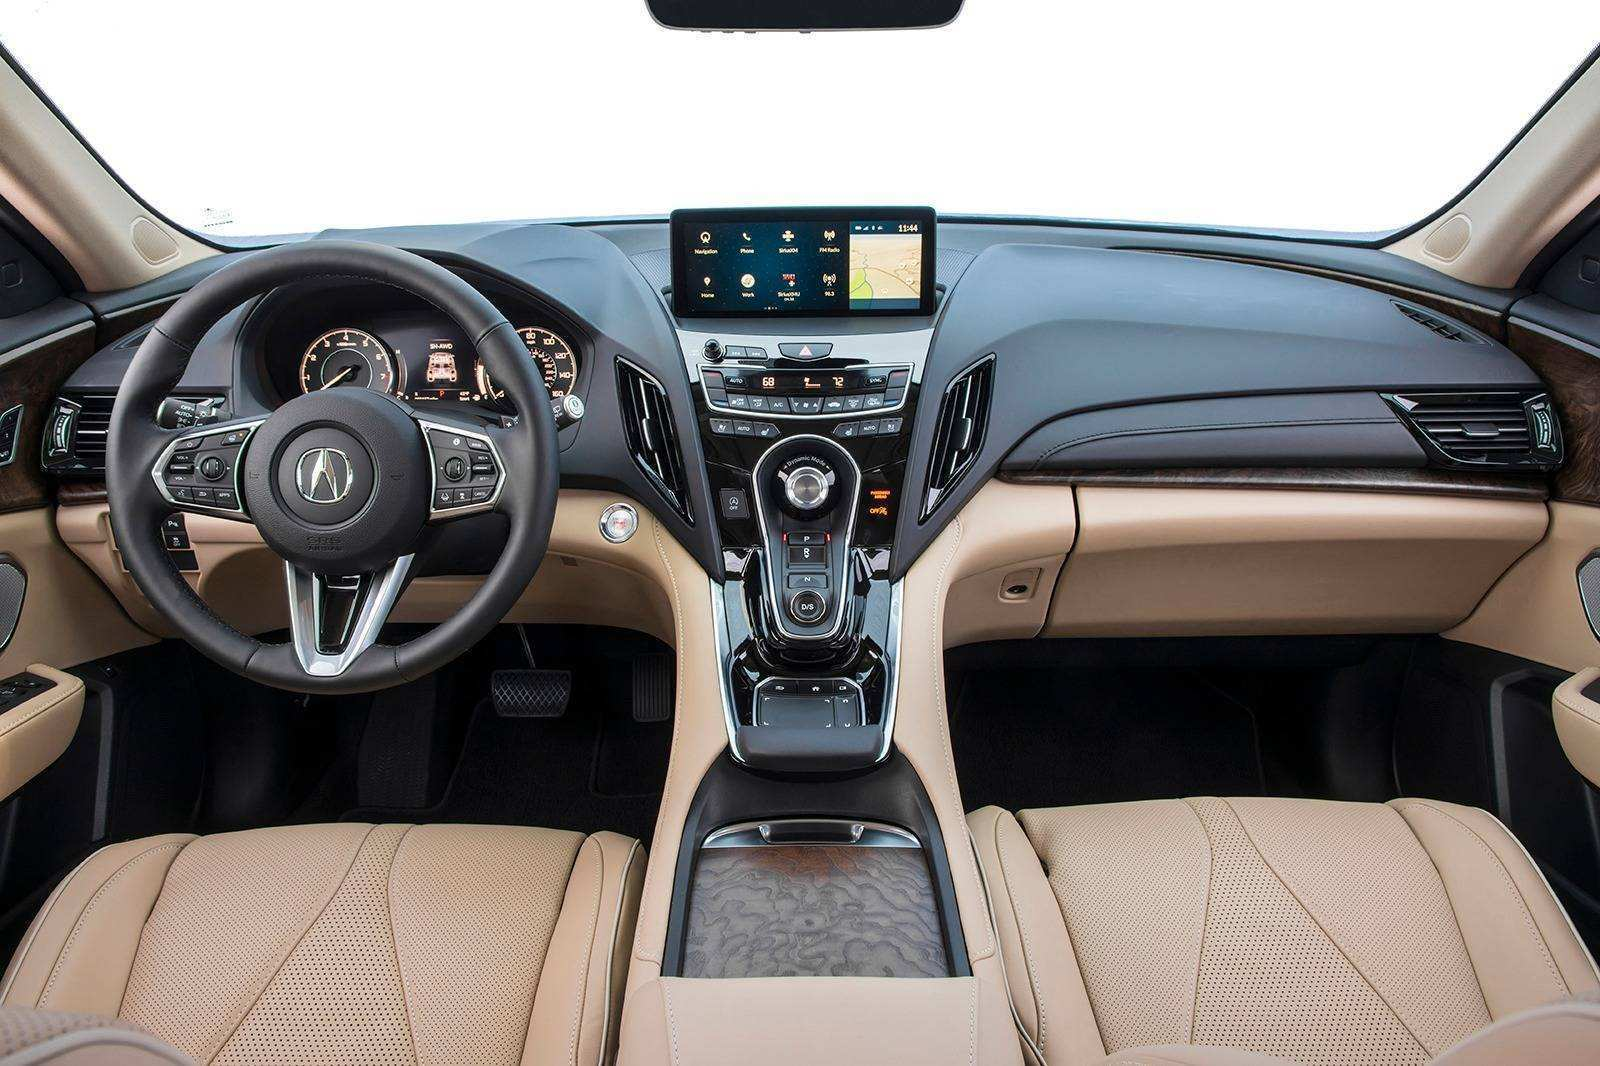 67 Concept of The 2019 Acura Rdx Edmunds Review And Price Performance and New Engine with The 2019 Acura Rdx Edmunds Review And Price